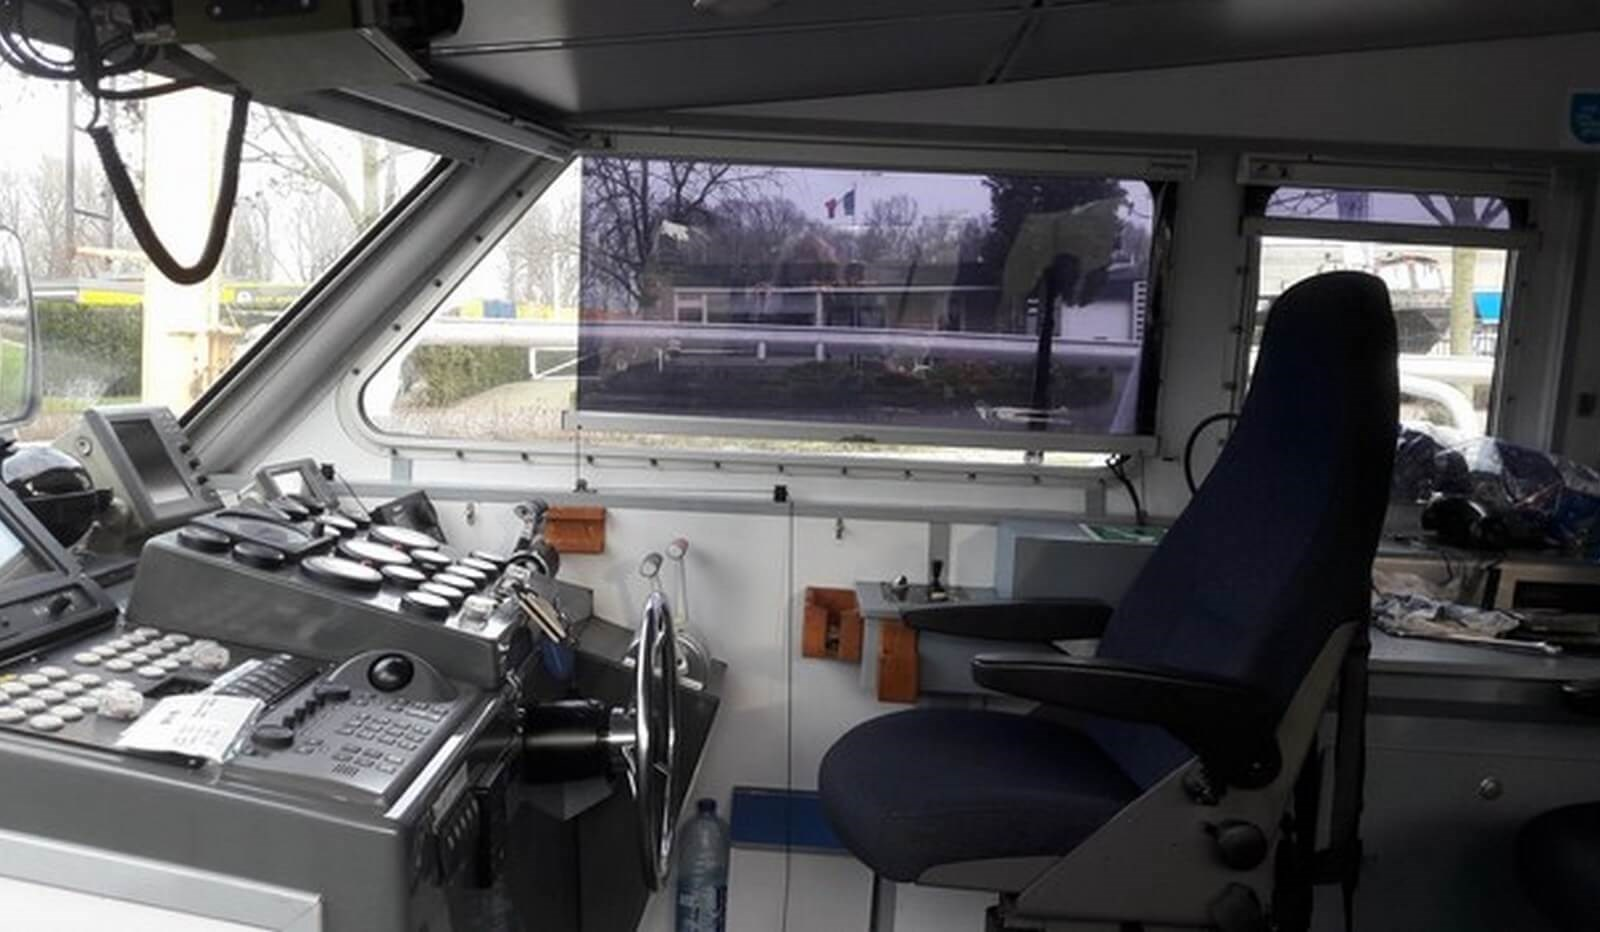 used police boat for sale 07591 (17)